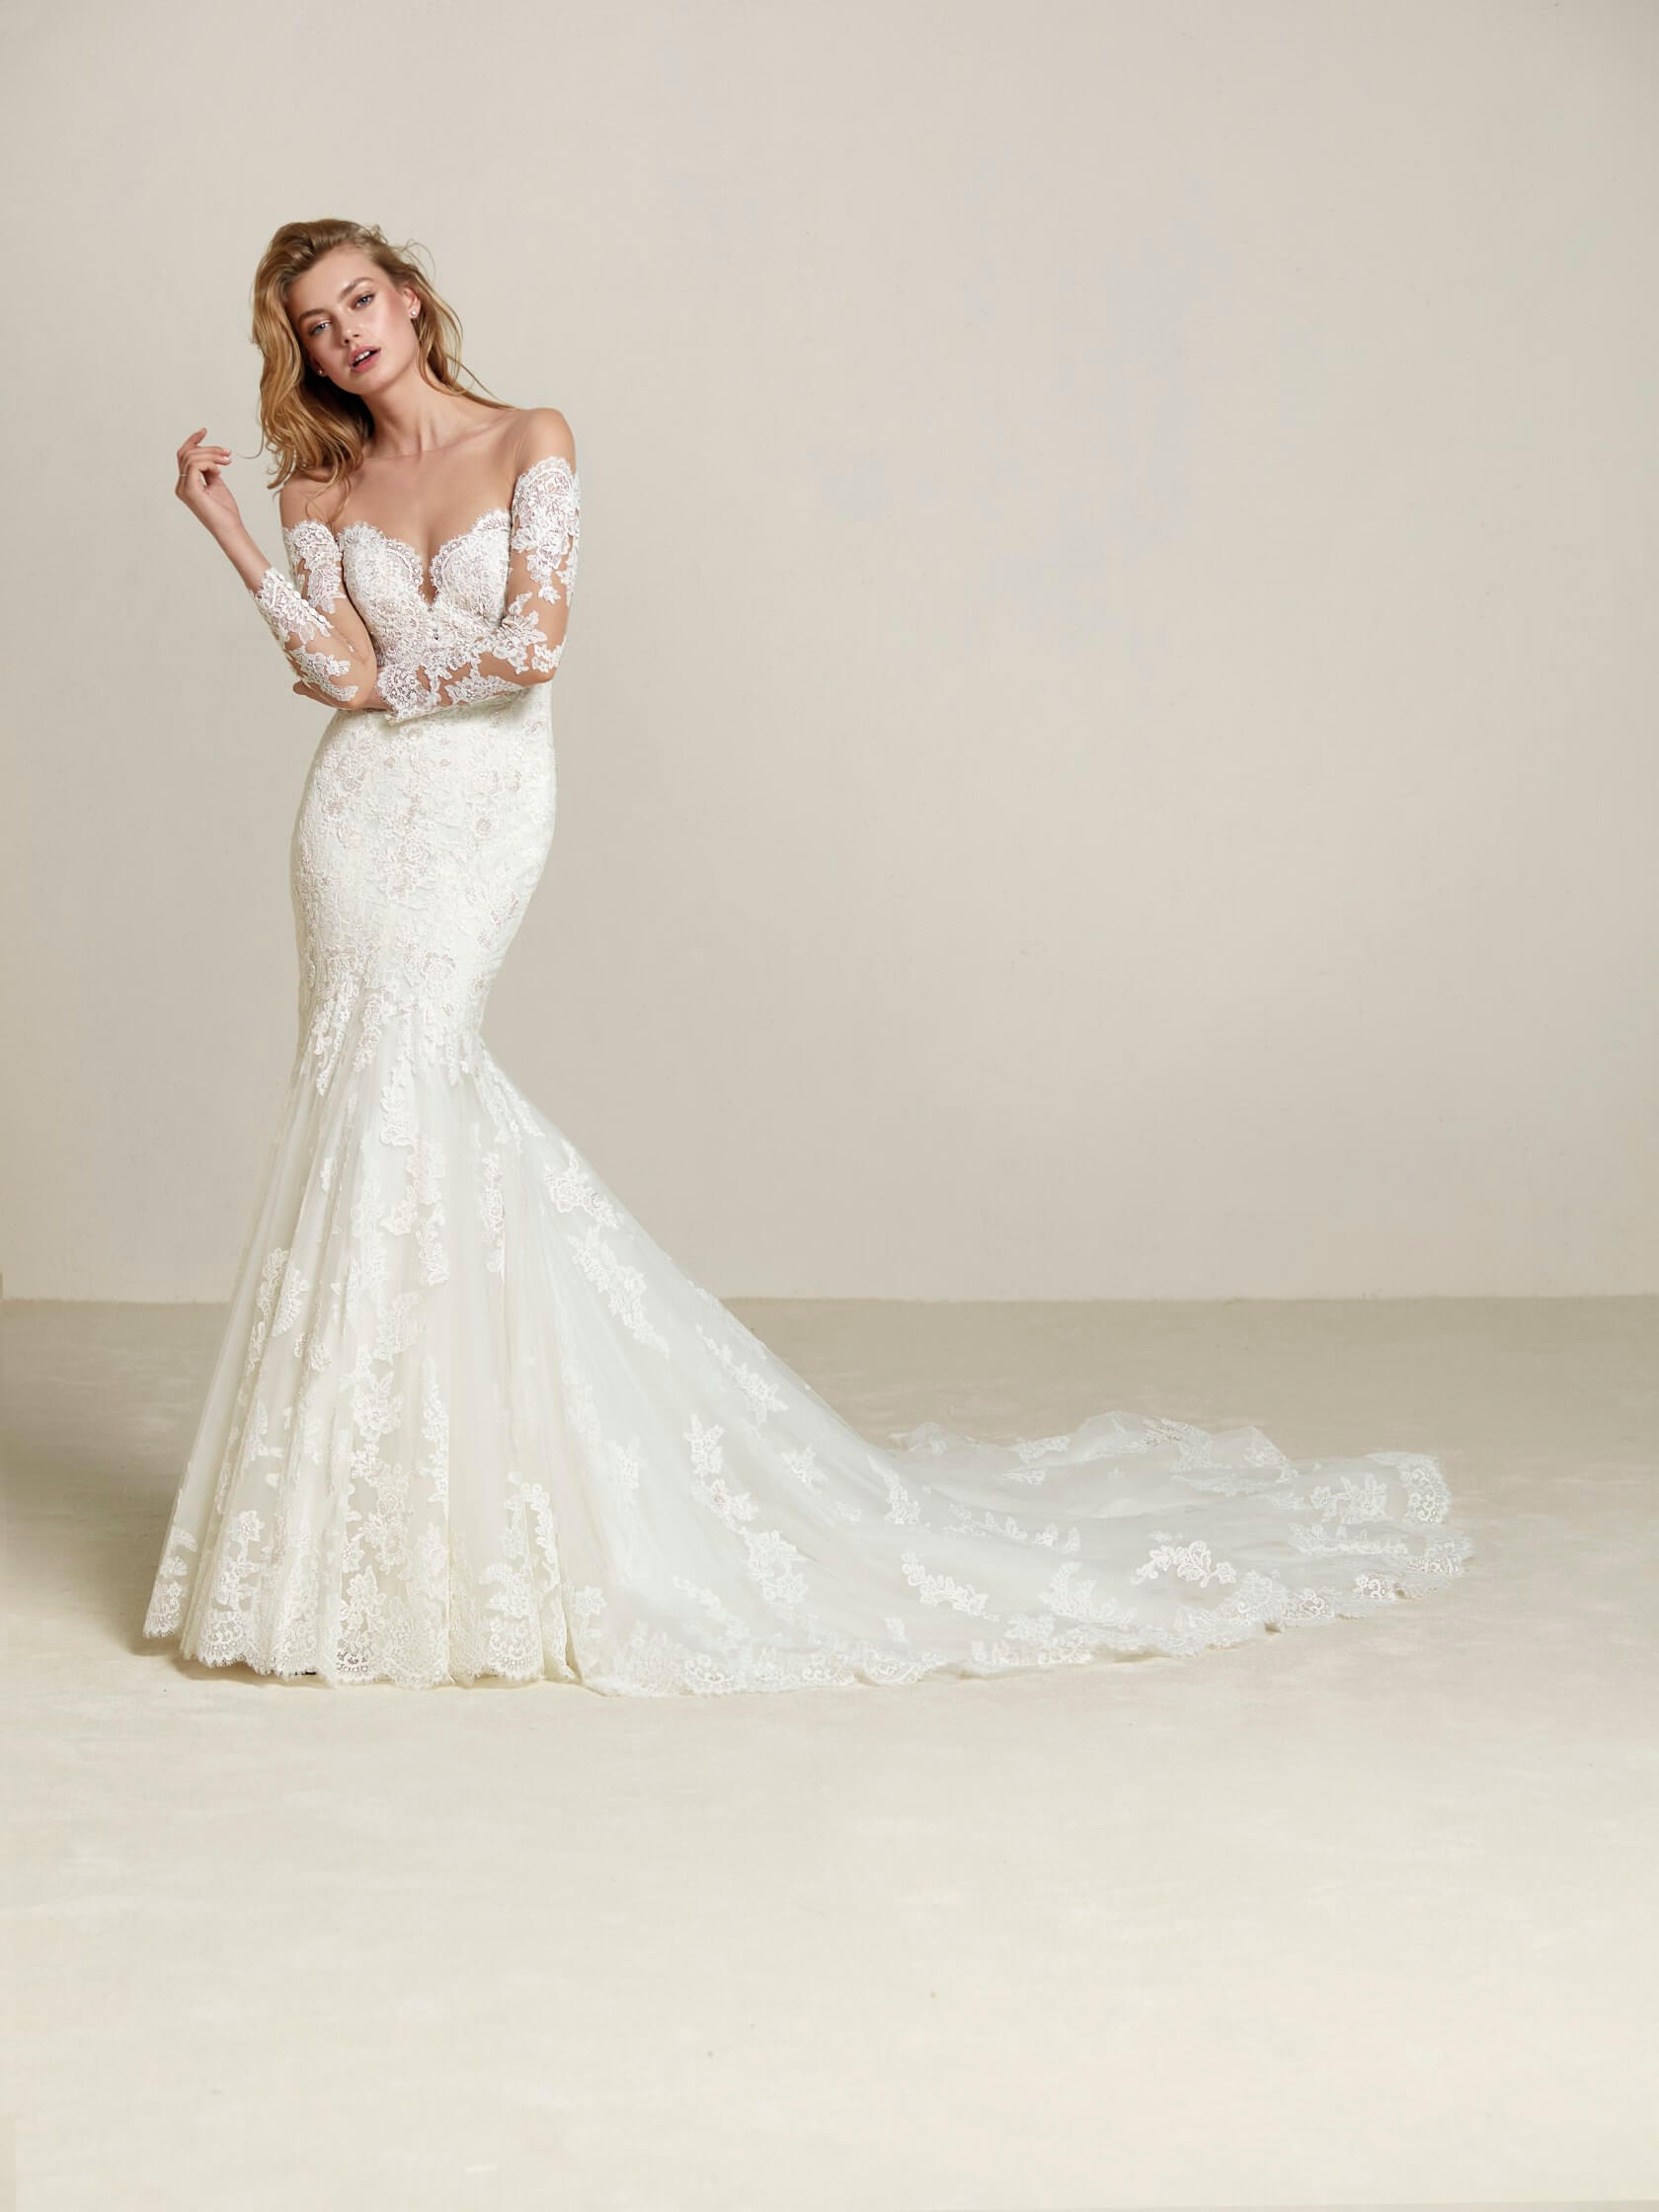 43543278f909 Abito Sposa DRILIA · Pronovias 2018 · Temptation s Gallery